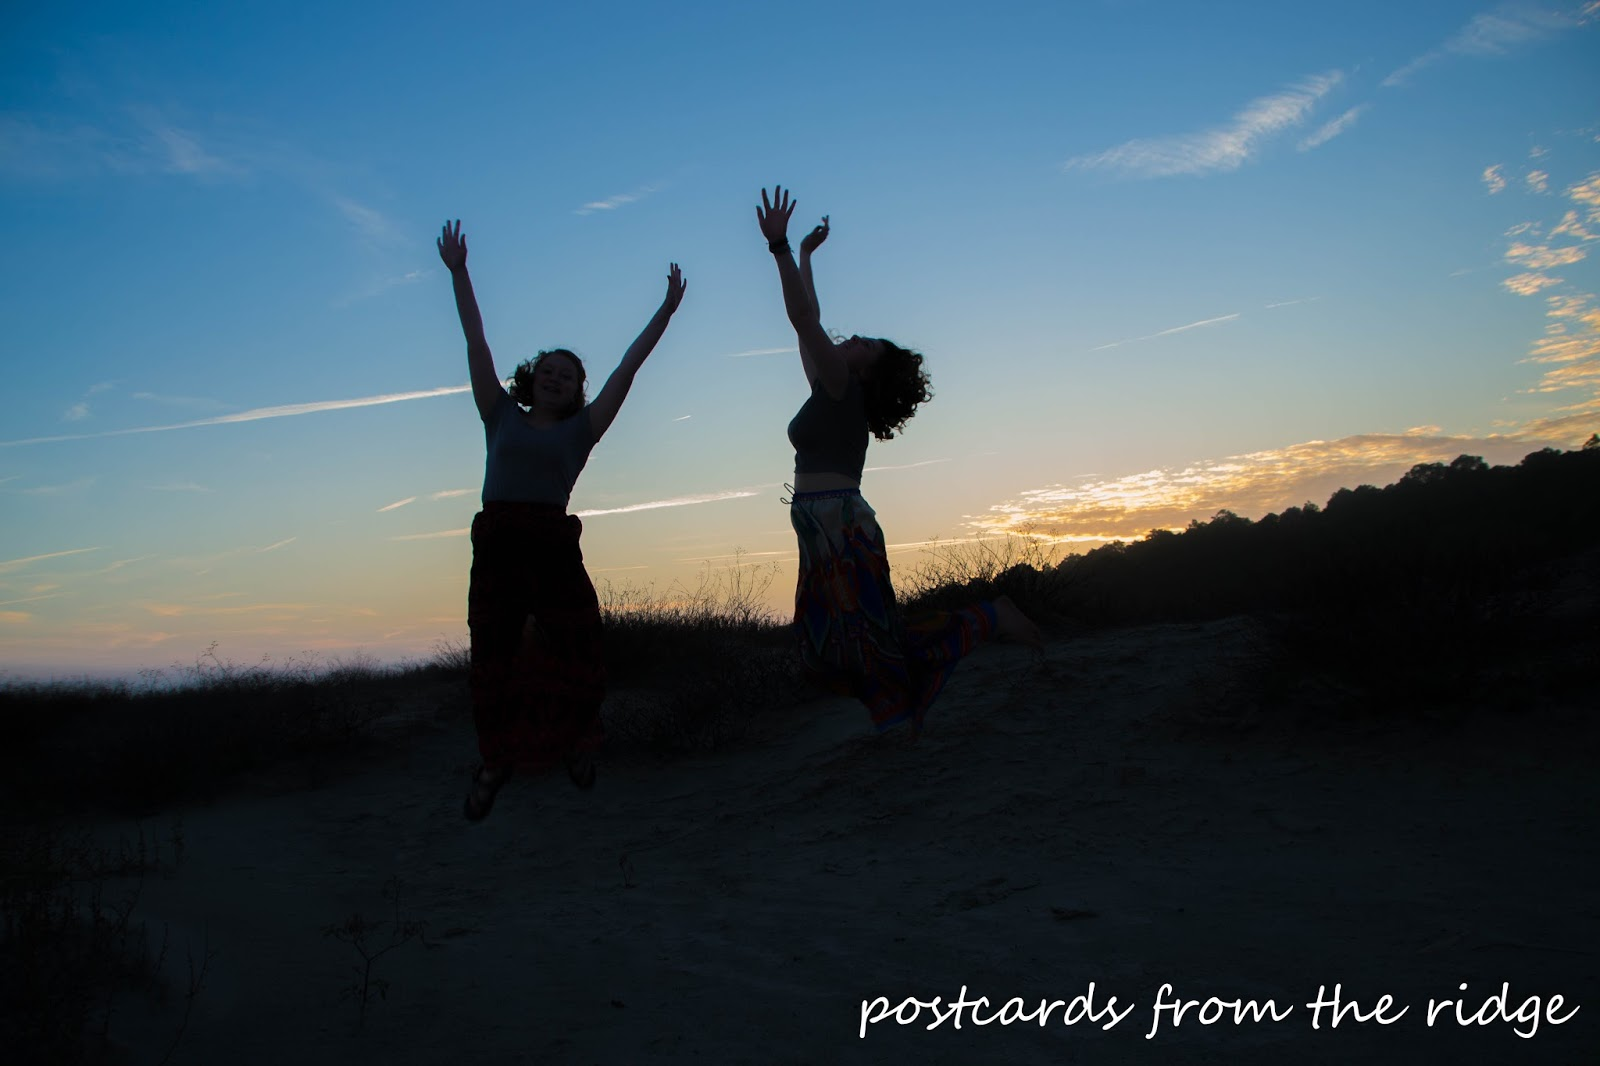 Silhouettes jumping in the sunset at Kiawah Island, SC. Postcards from the Ridge.